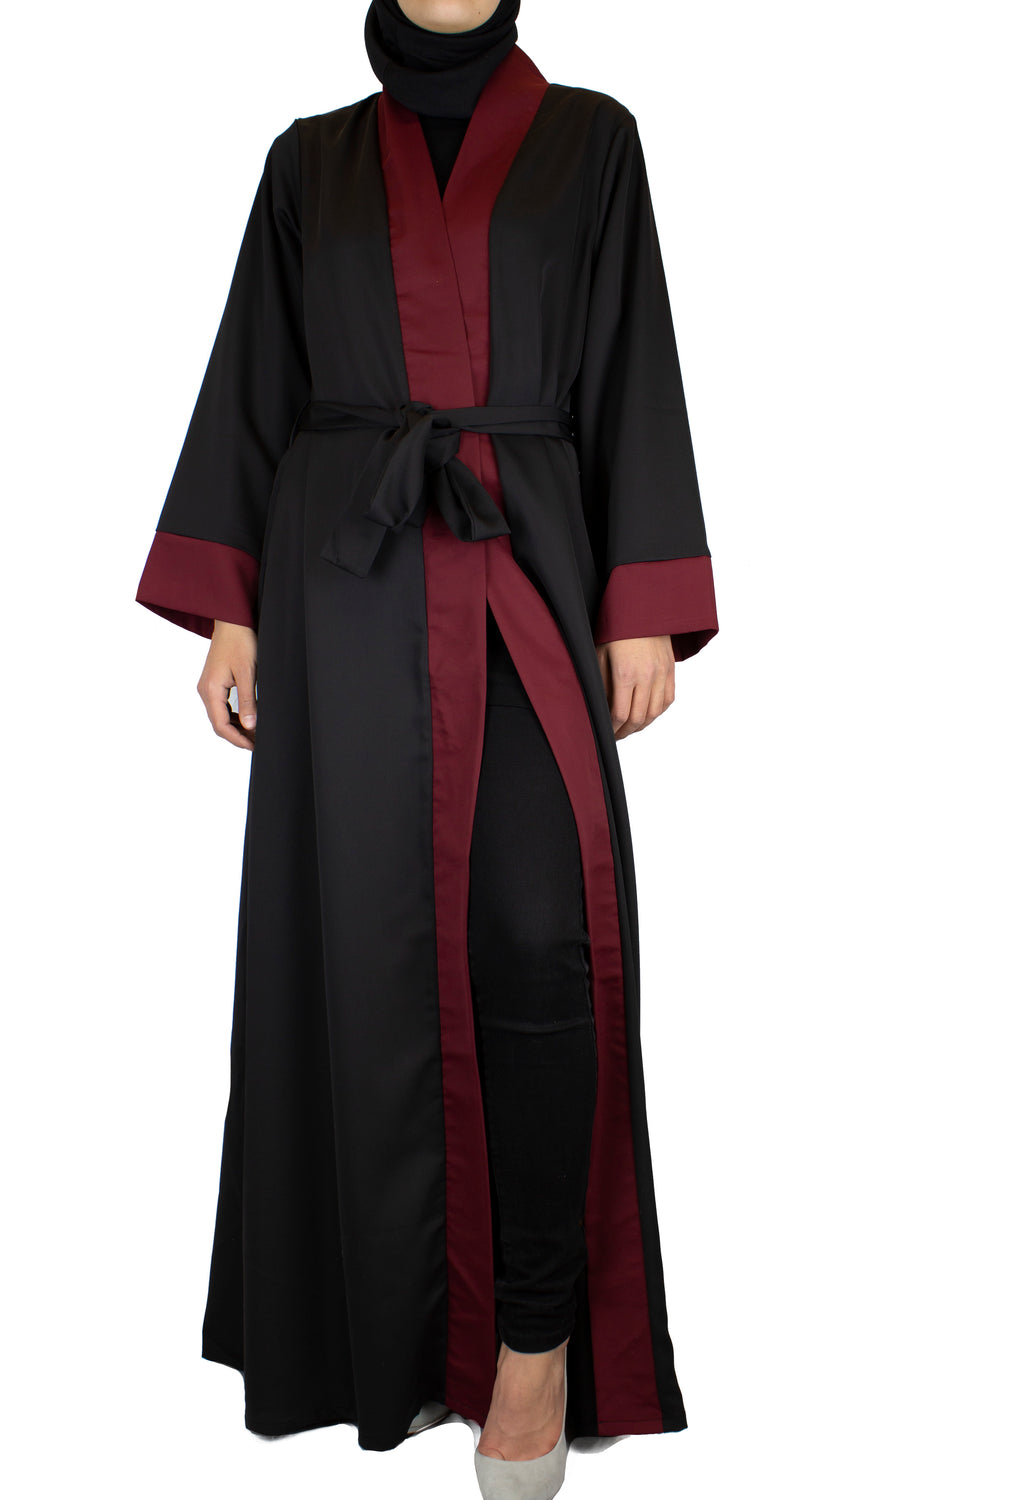 Two-Toned Abaya - Black